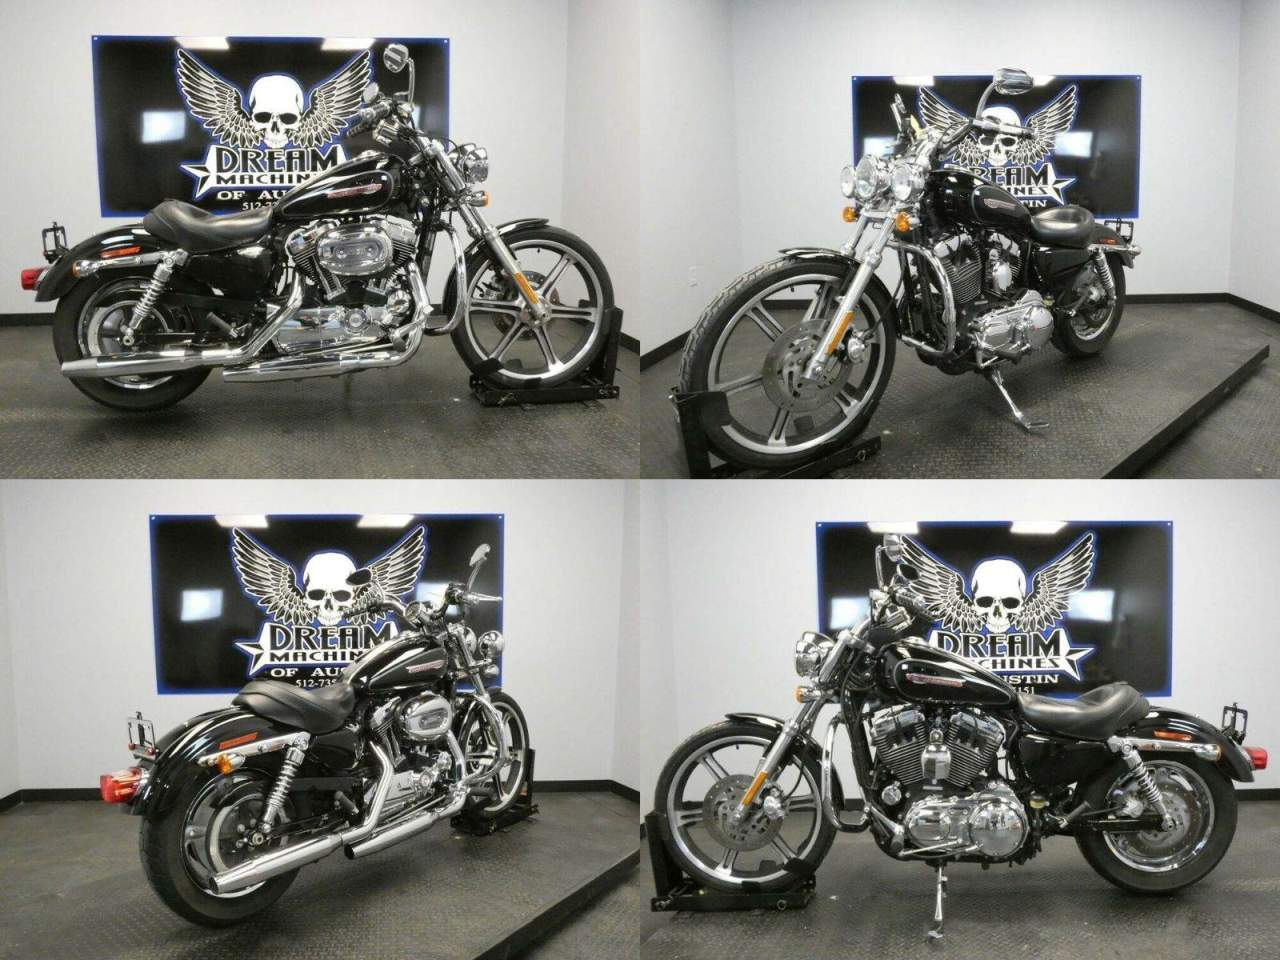 2009 Harley-Davidson XL1200C - Sportster 1200 Custom Black used for sale near me